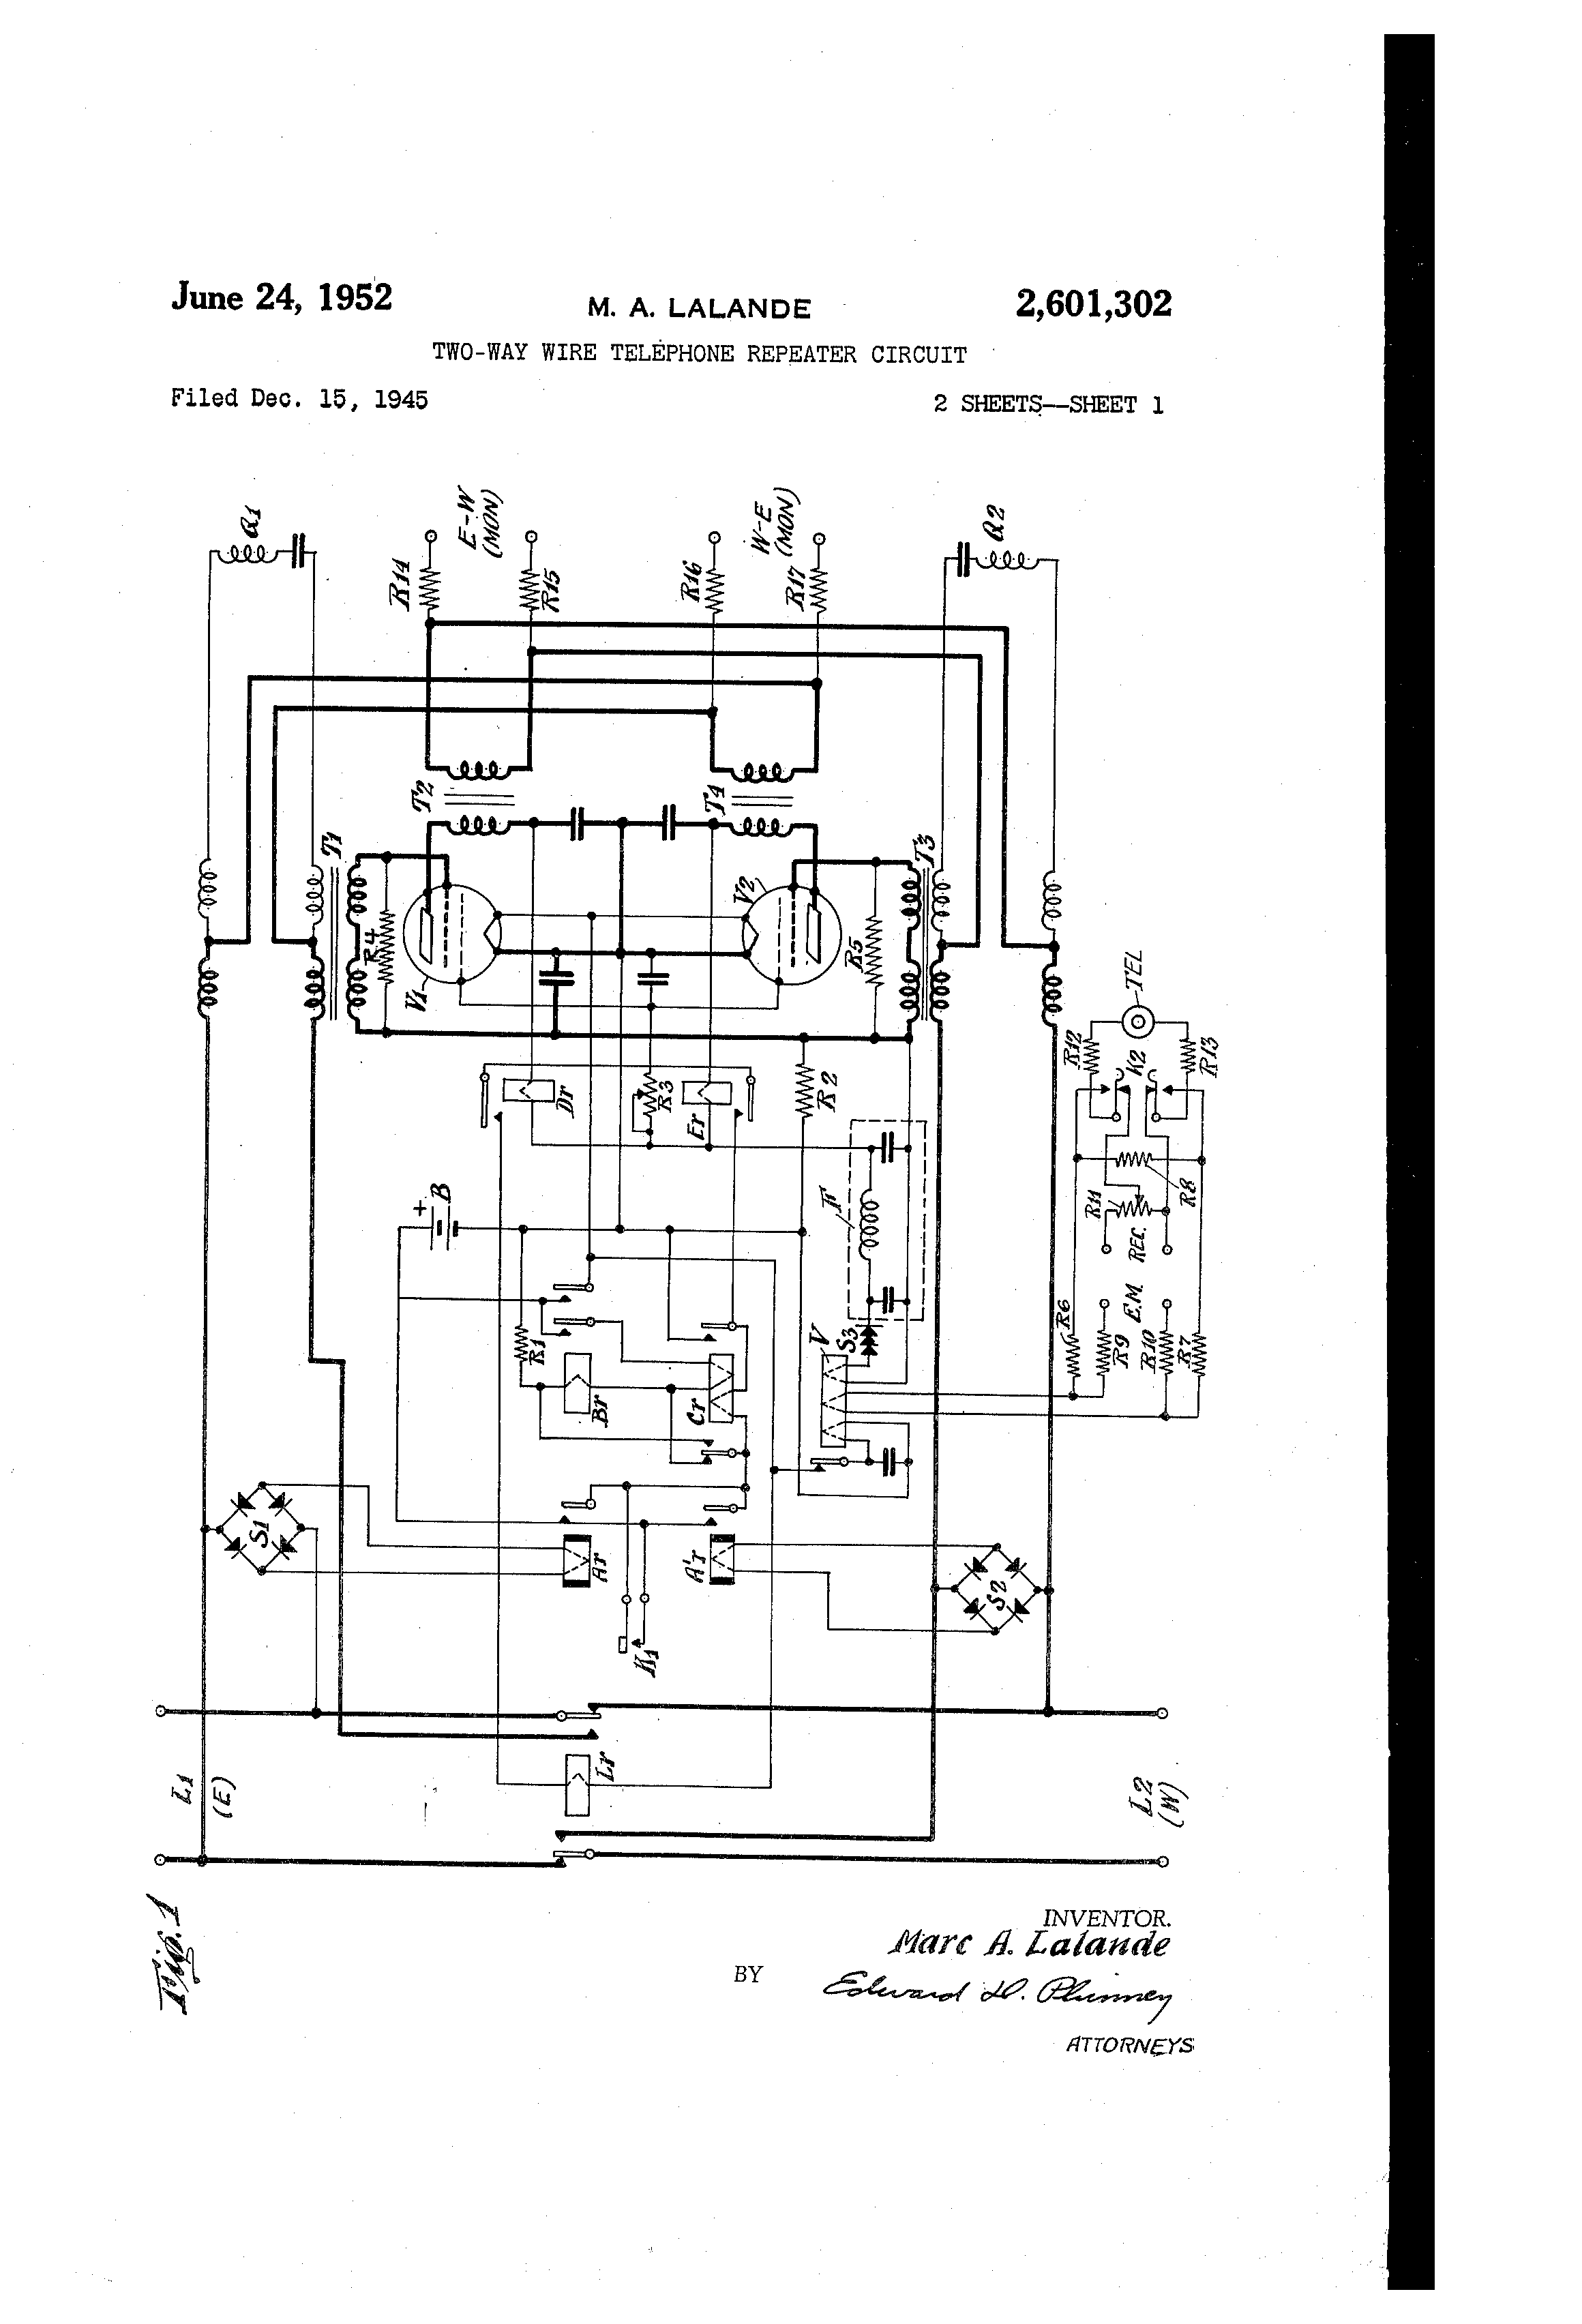 Winch P77724 Wiring Diagram 27 Wiring Diagram Images